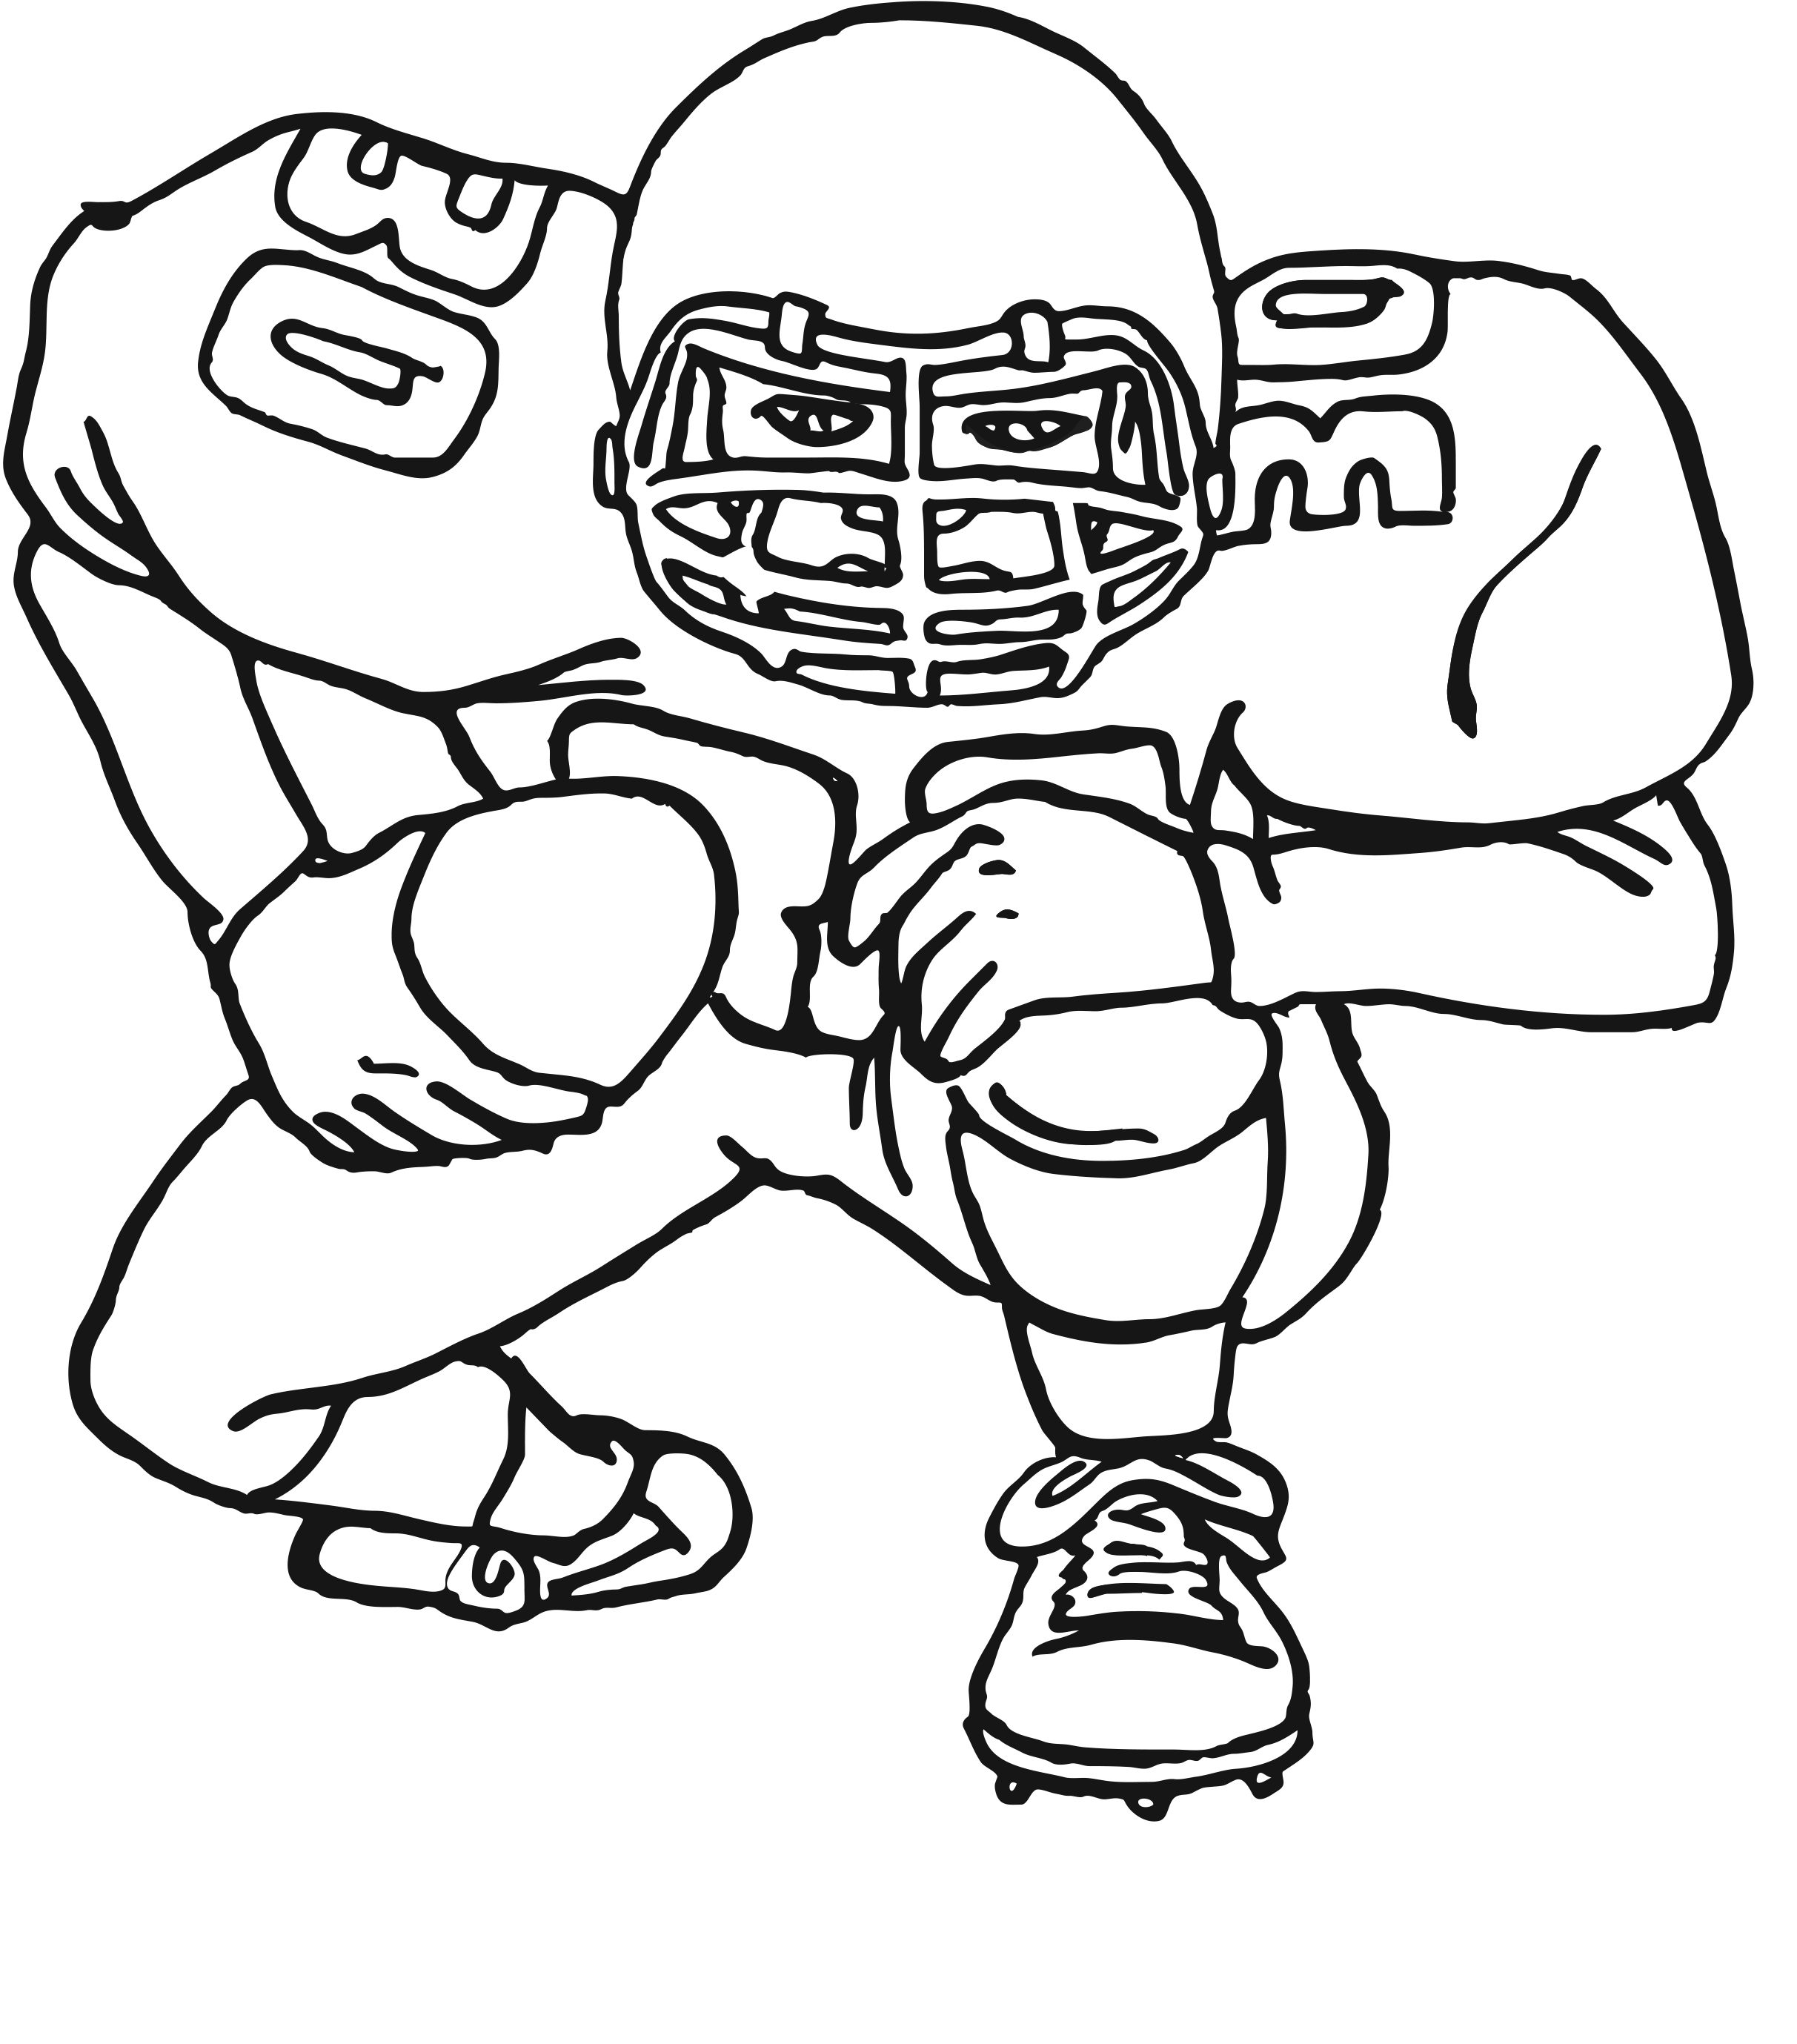 football pictures coloring pages - photo#15